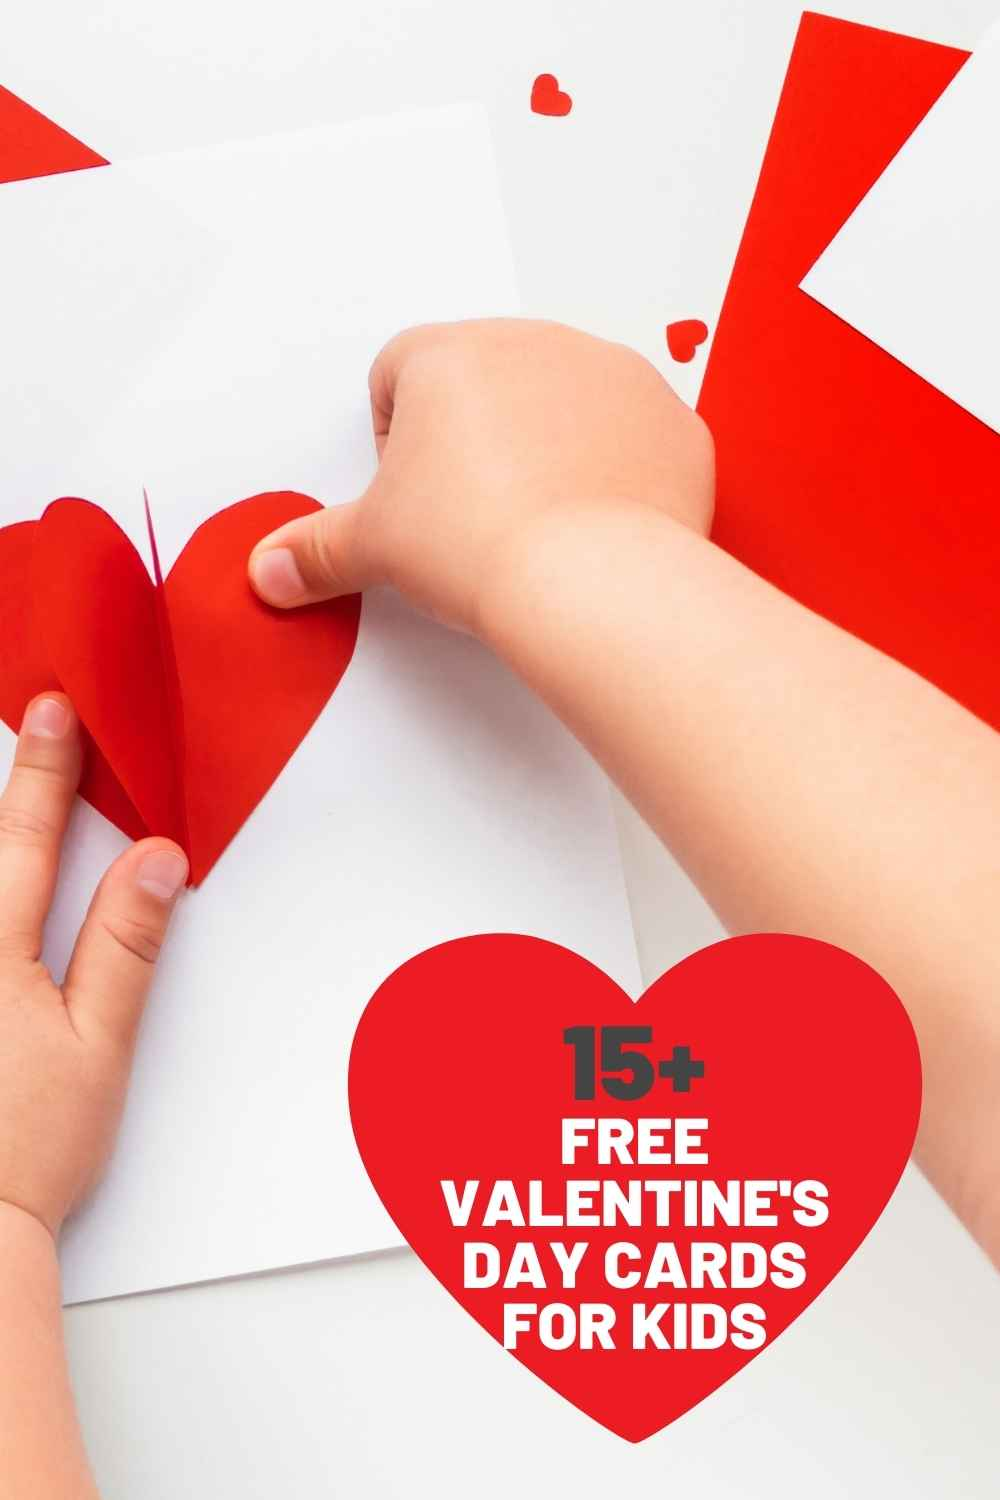 15+ free valentines day cards for kids